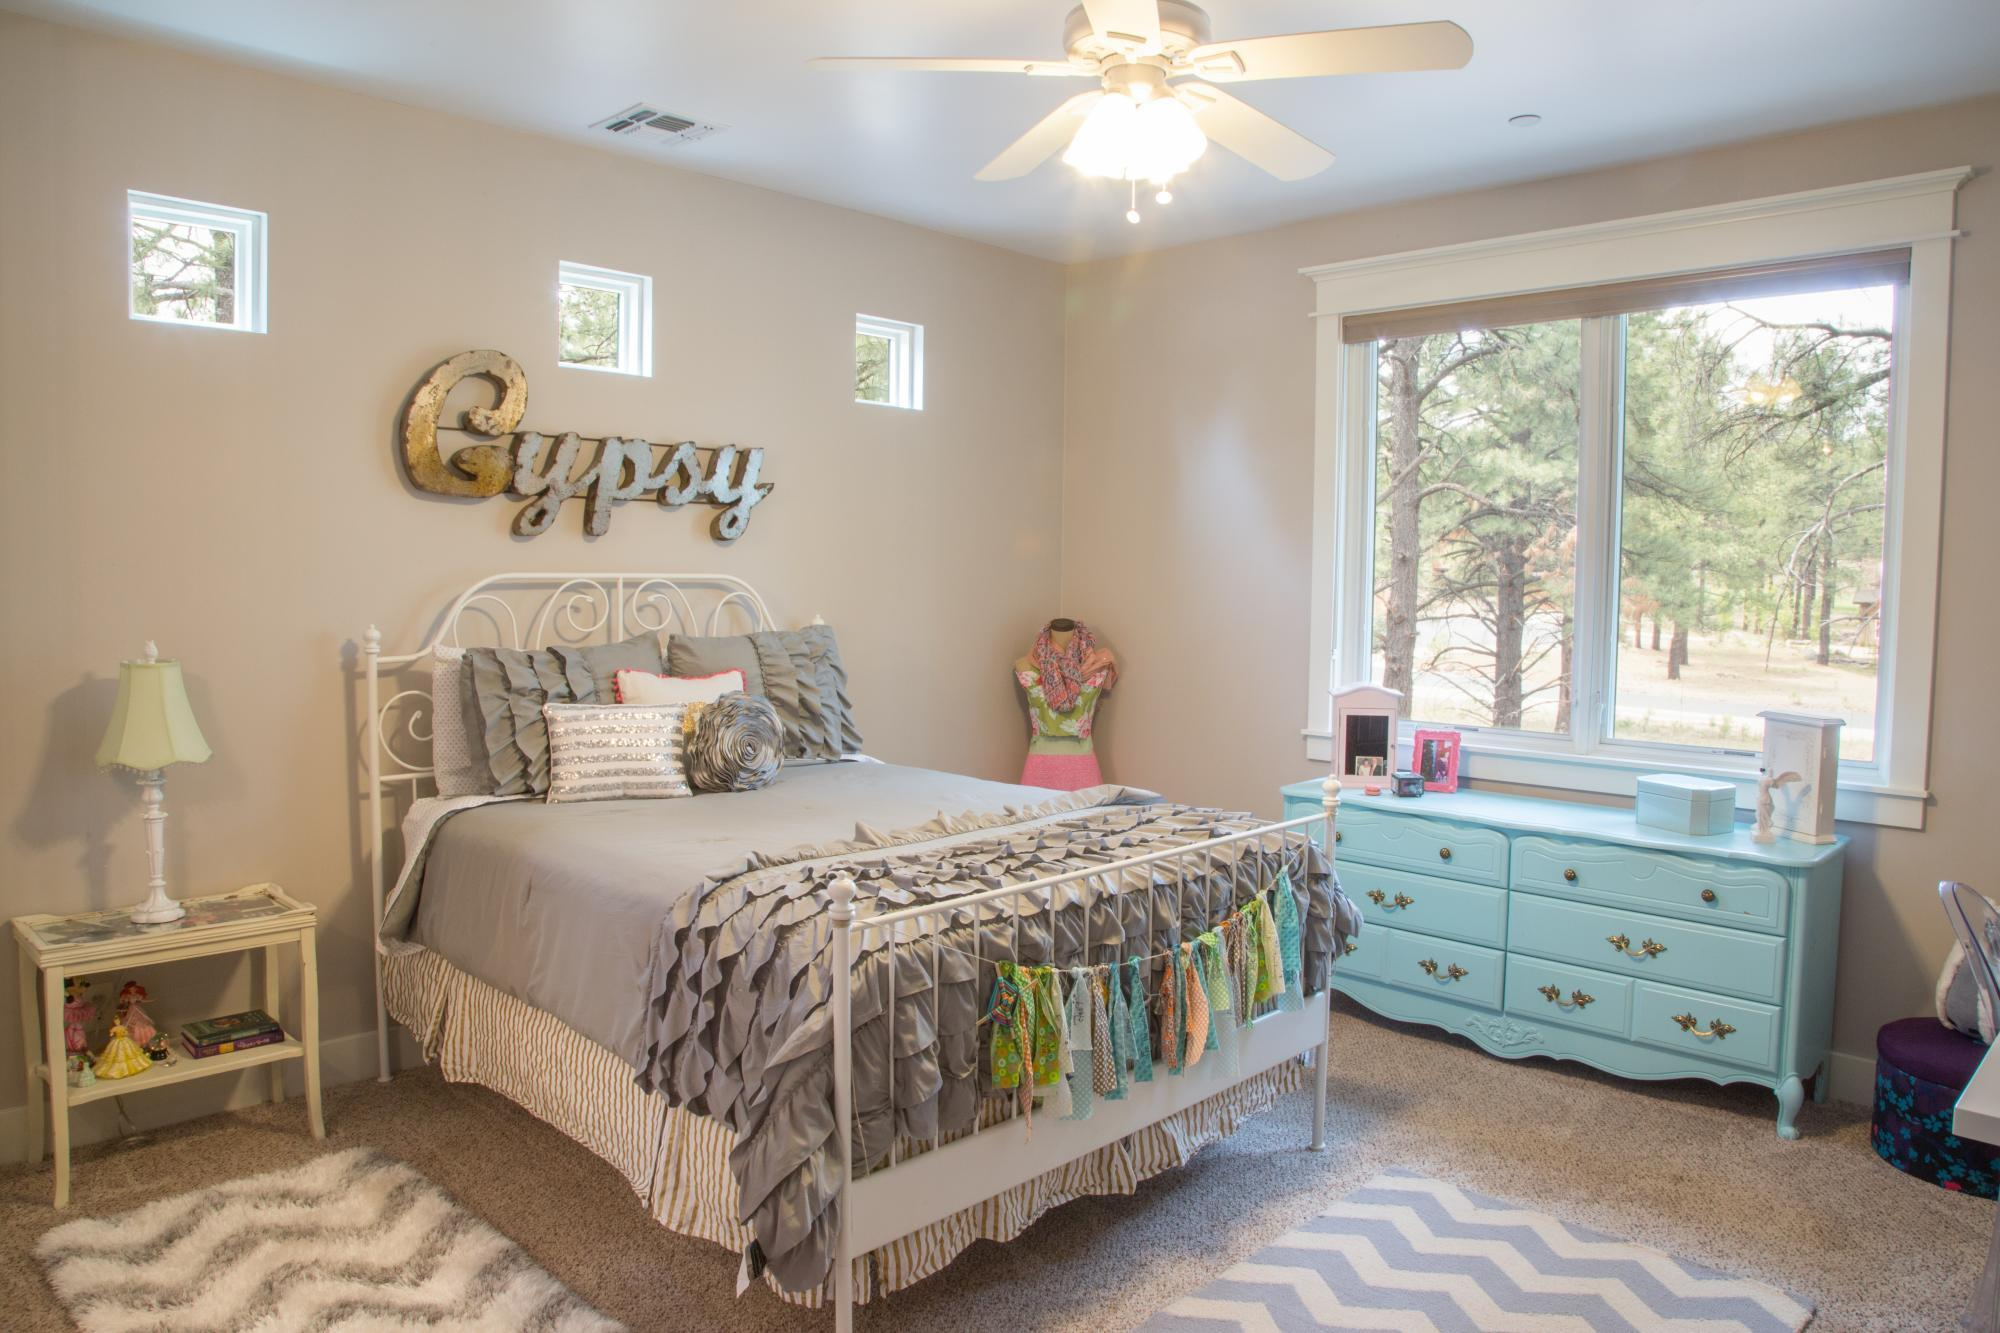 Bedroom featured in the Aspen Shadows Plan 3405 By Capstone Homes in Flagstaff, AZ